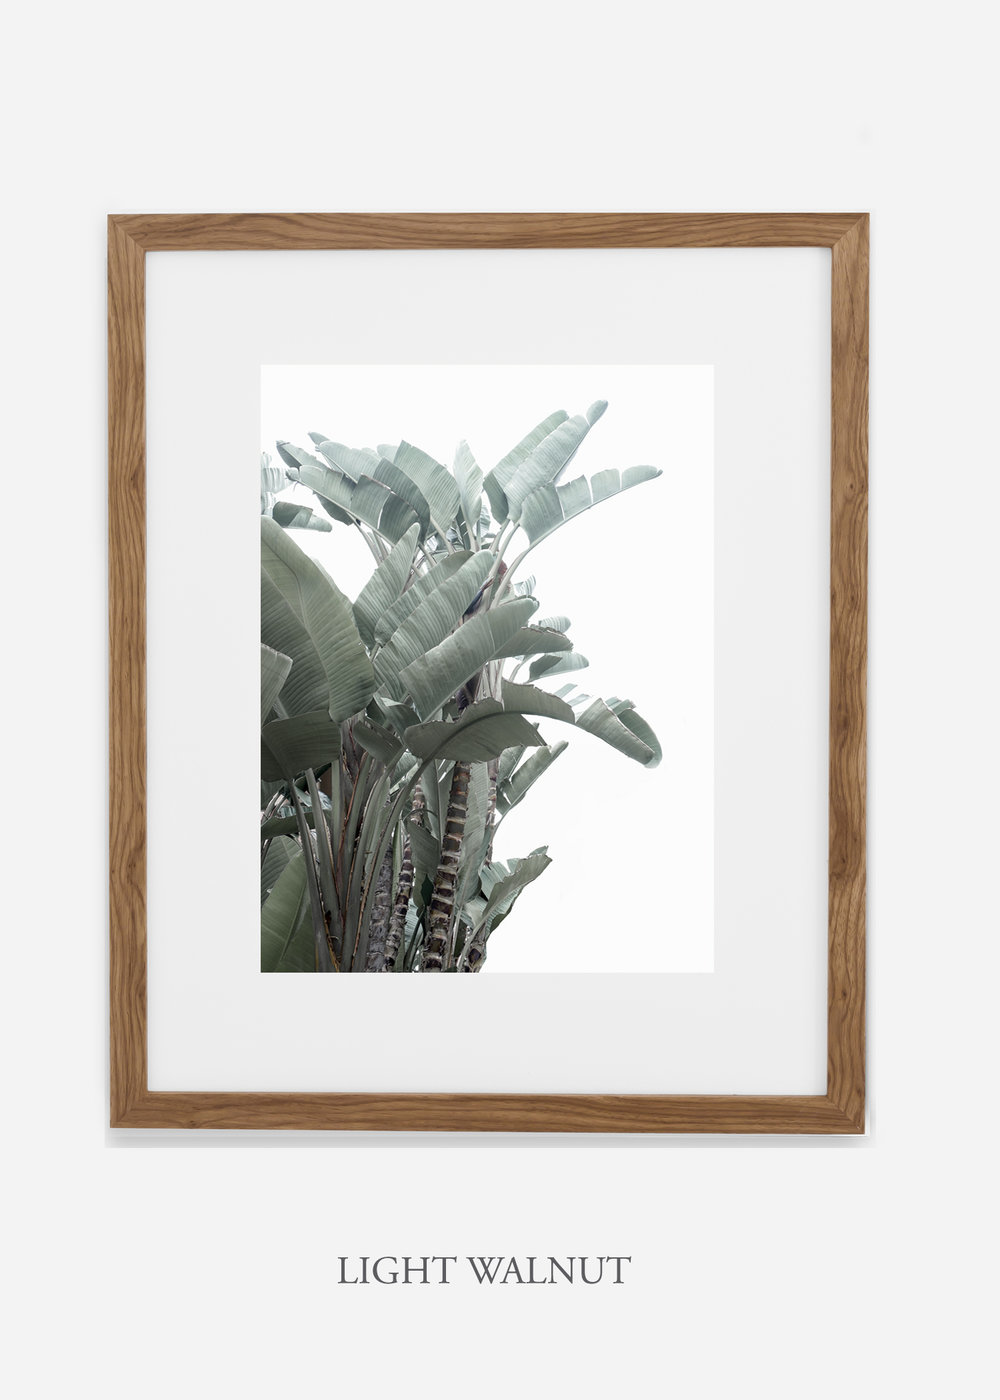 wildercalifornia_lightwalnutframe_WinterWhite_BananaLeafNo.1_Tropical_LosAngeles_Art_HomeDecor_interiordesign_design.jpg